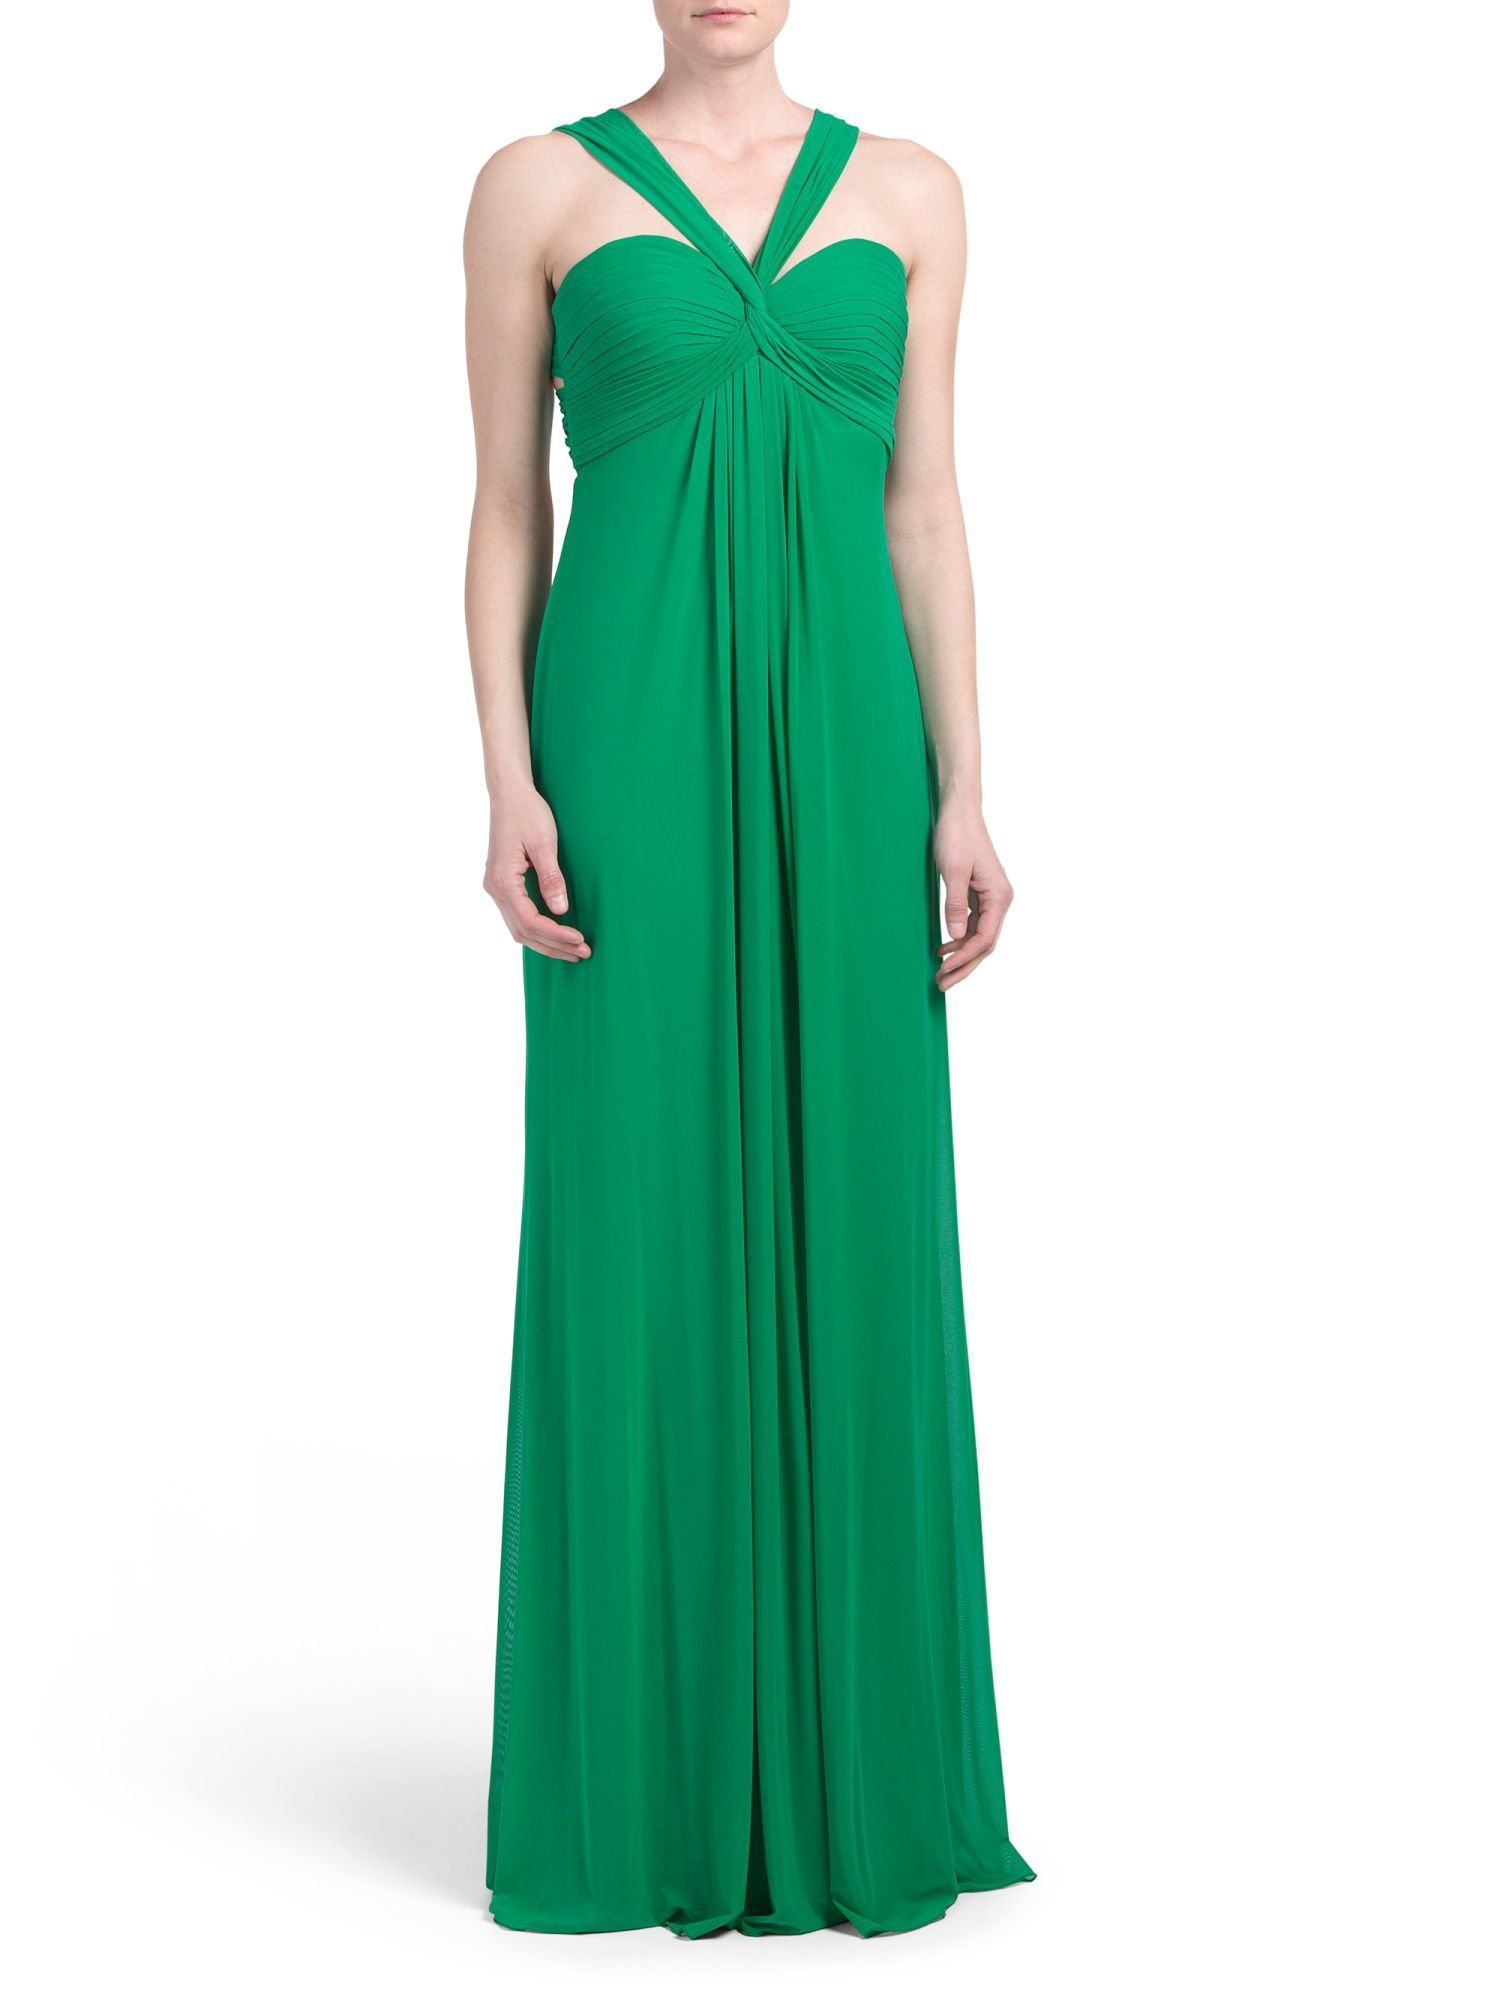 Halter gown products pinterest halter gown and products